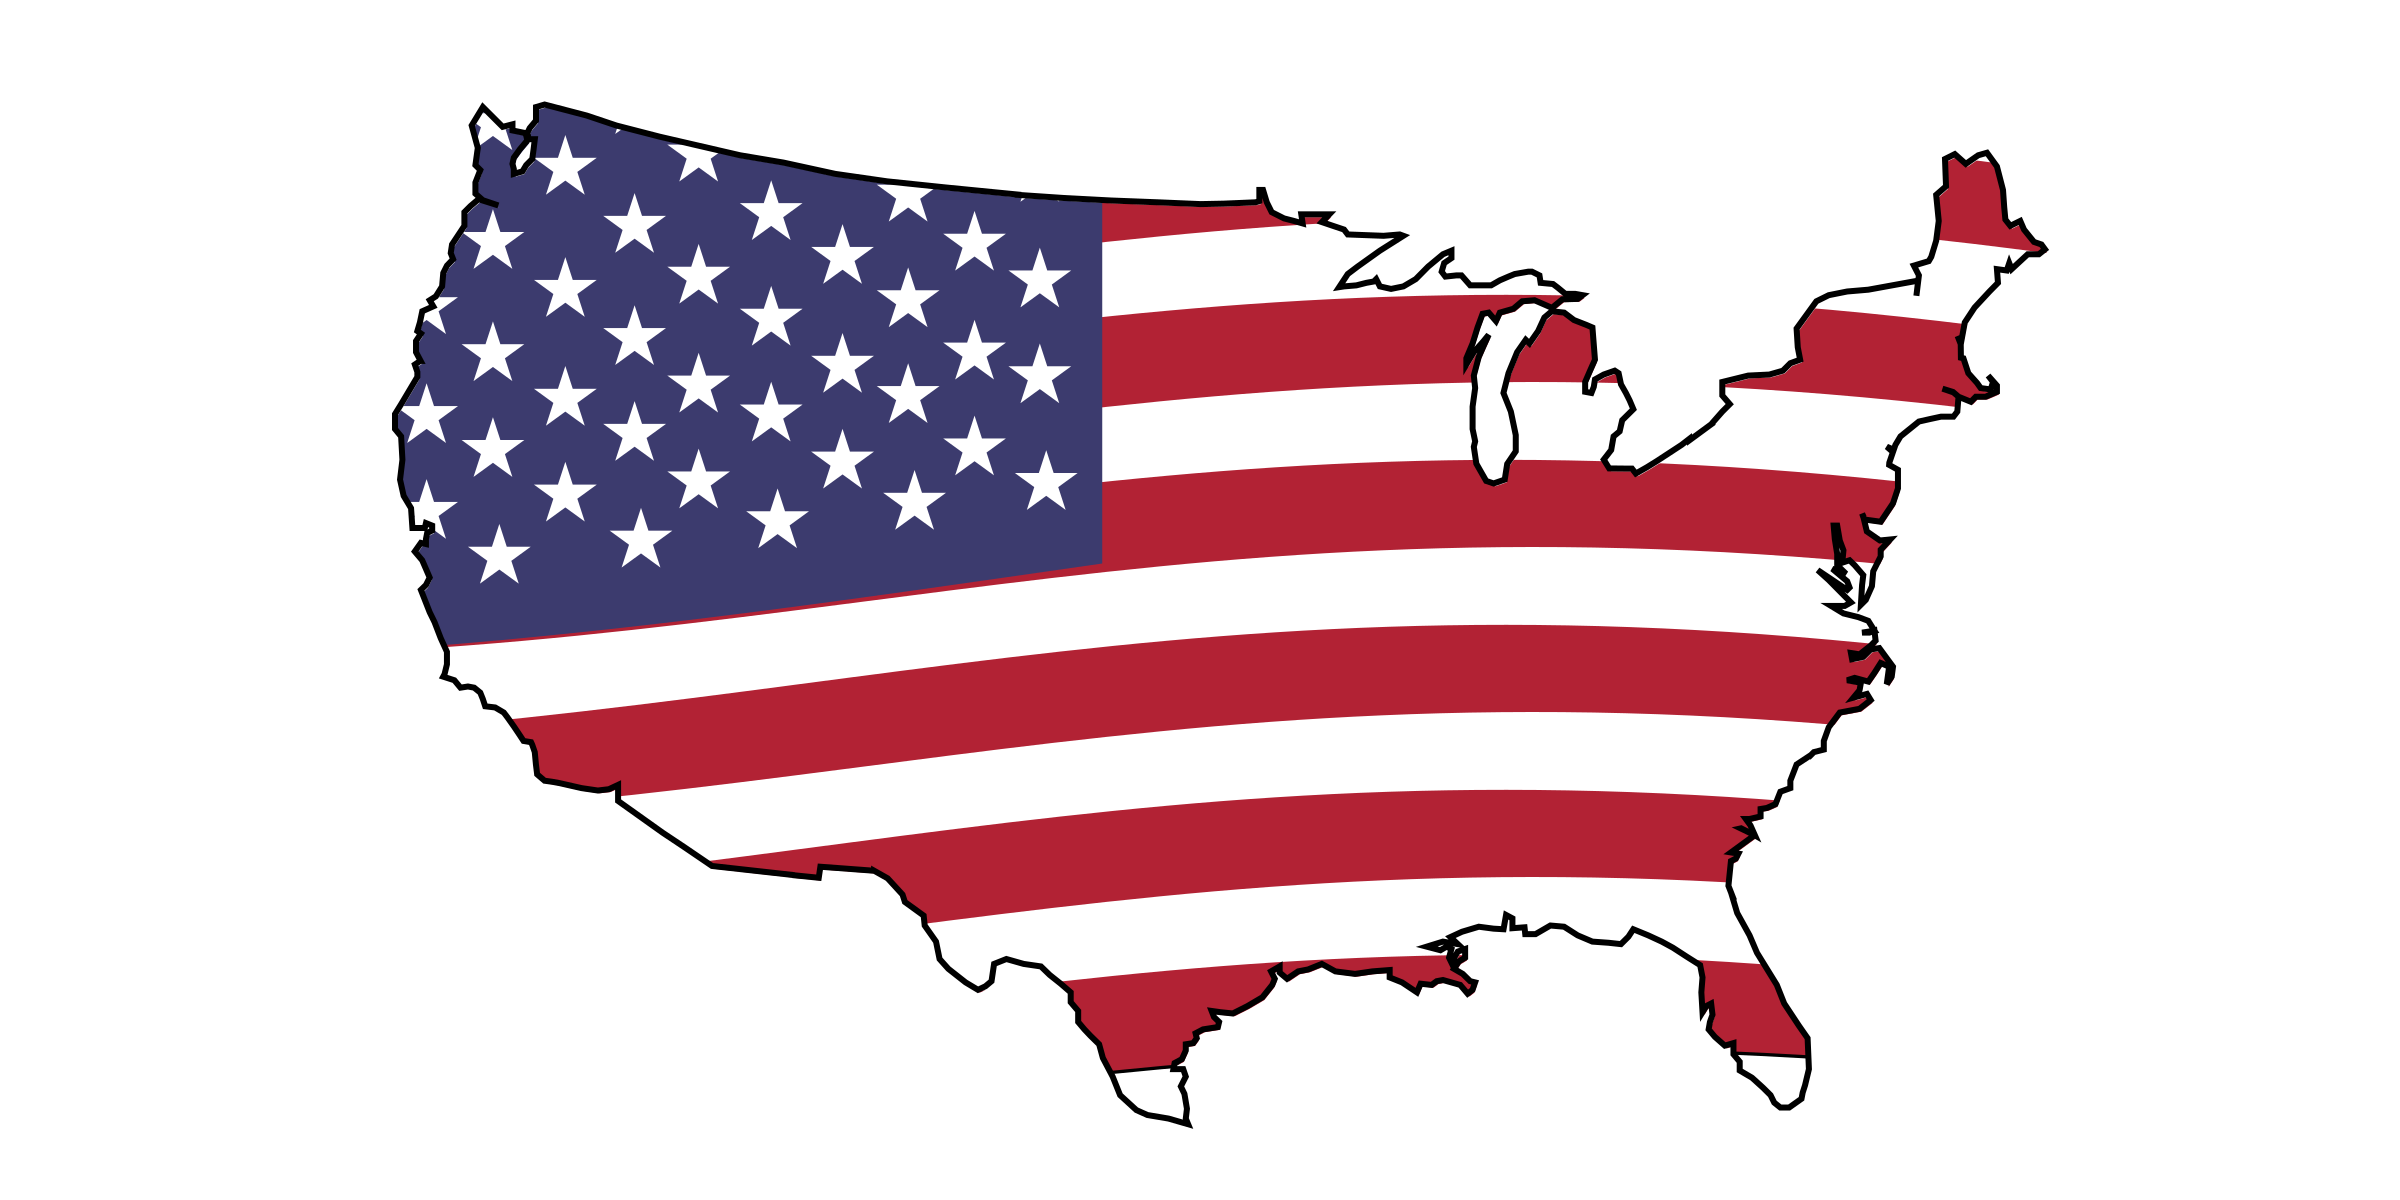 Flag clipart animated. Animation of american big